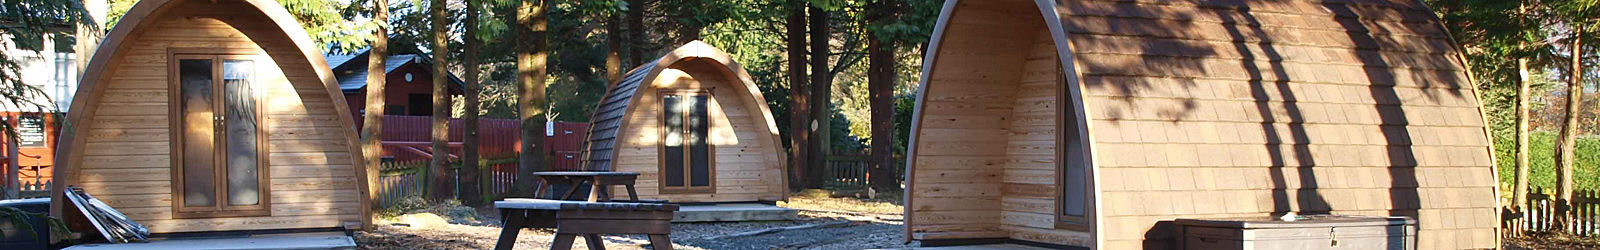 Camping Pods at Bellingham Club Site